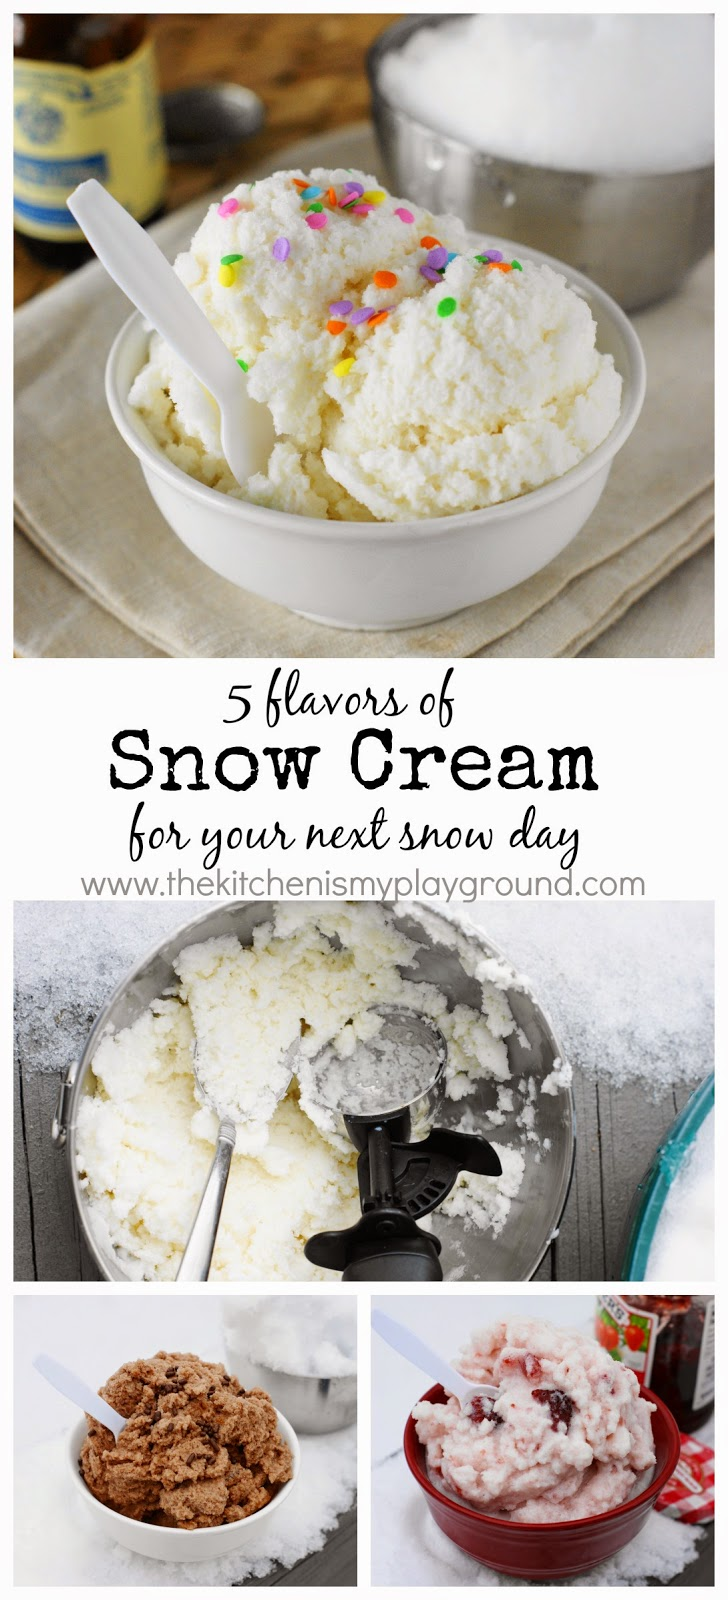 How to make snow cream 5 different flavors of snow ice cream how to make 5 flavors of snow cream for your next snow day image ccuart Gallery